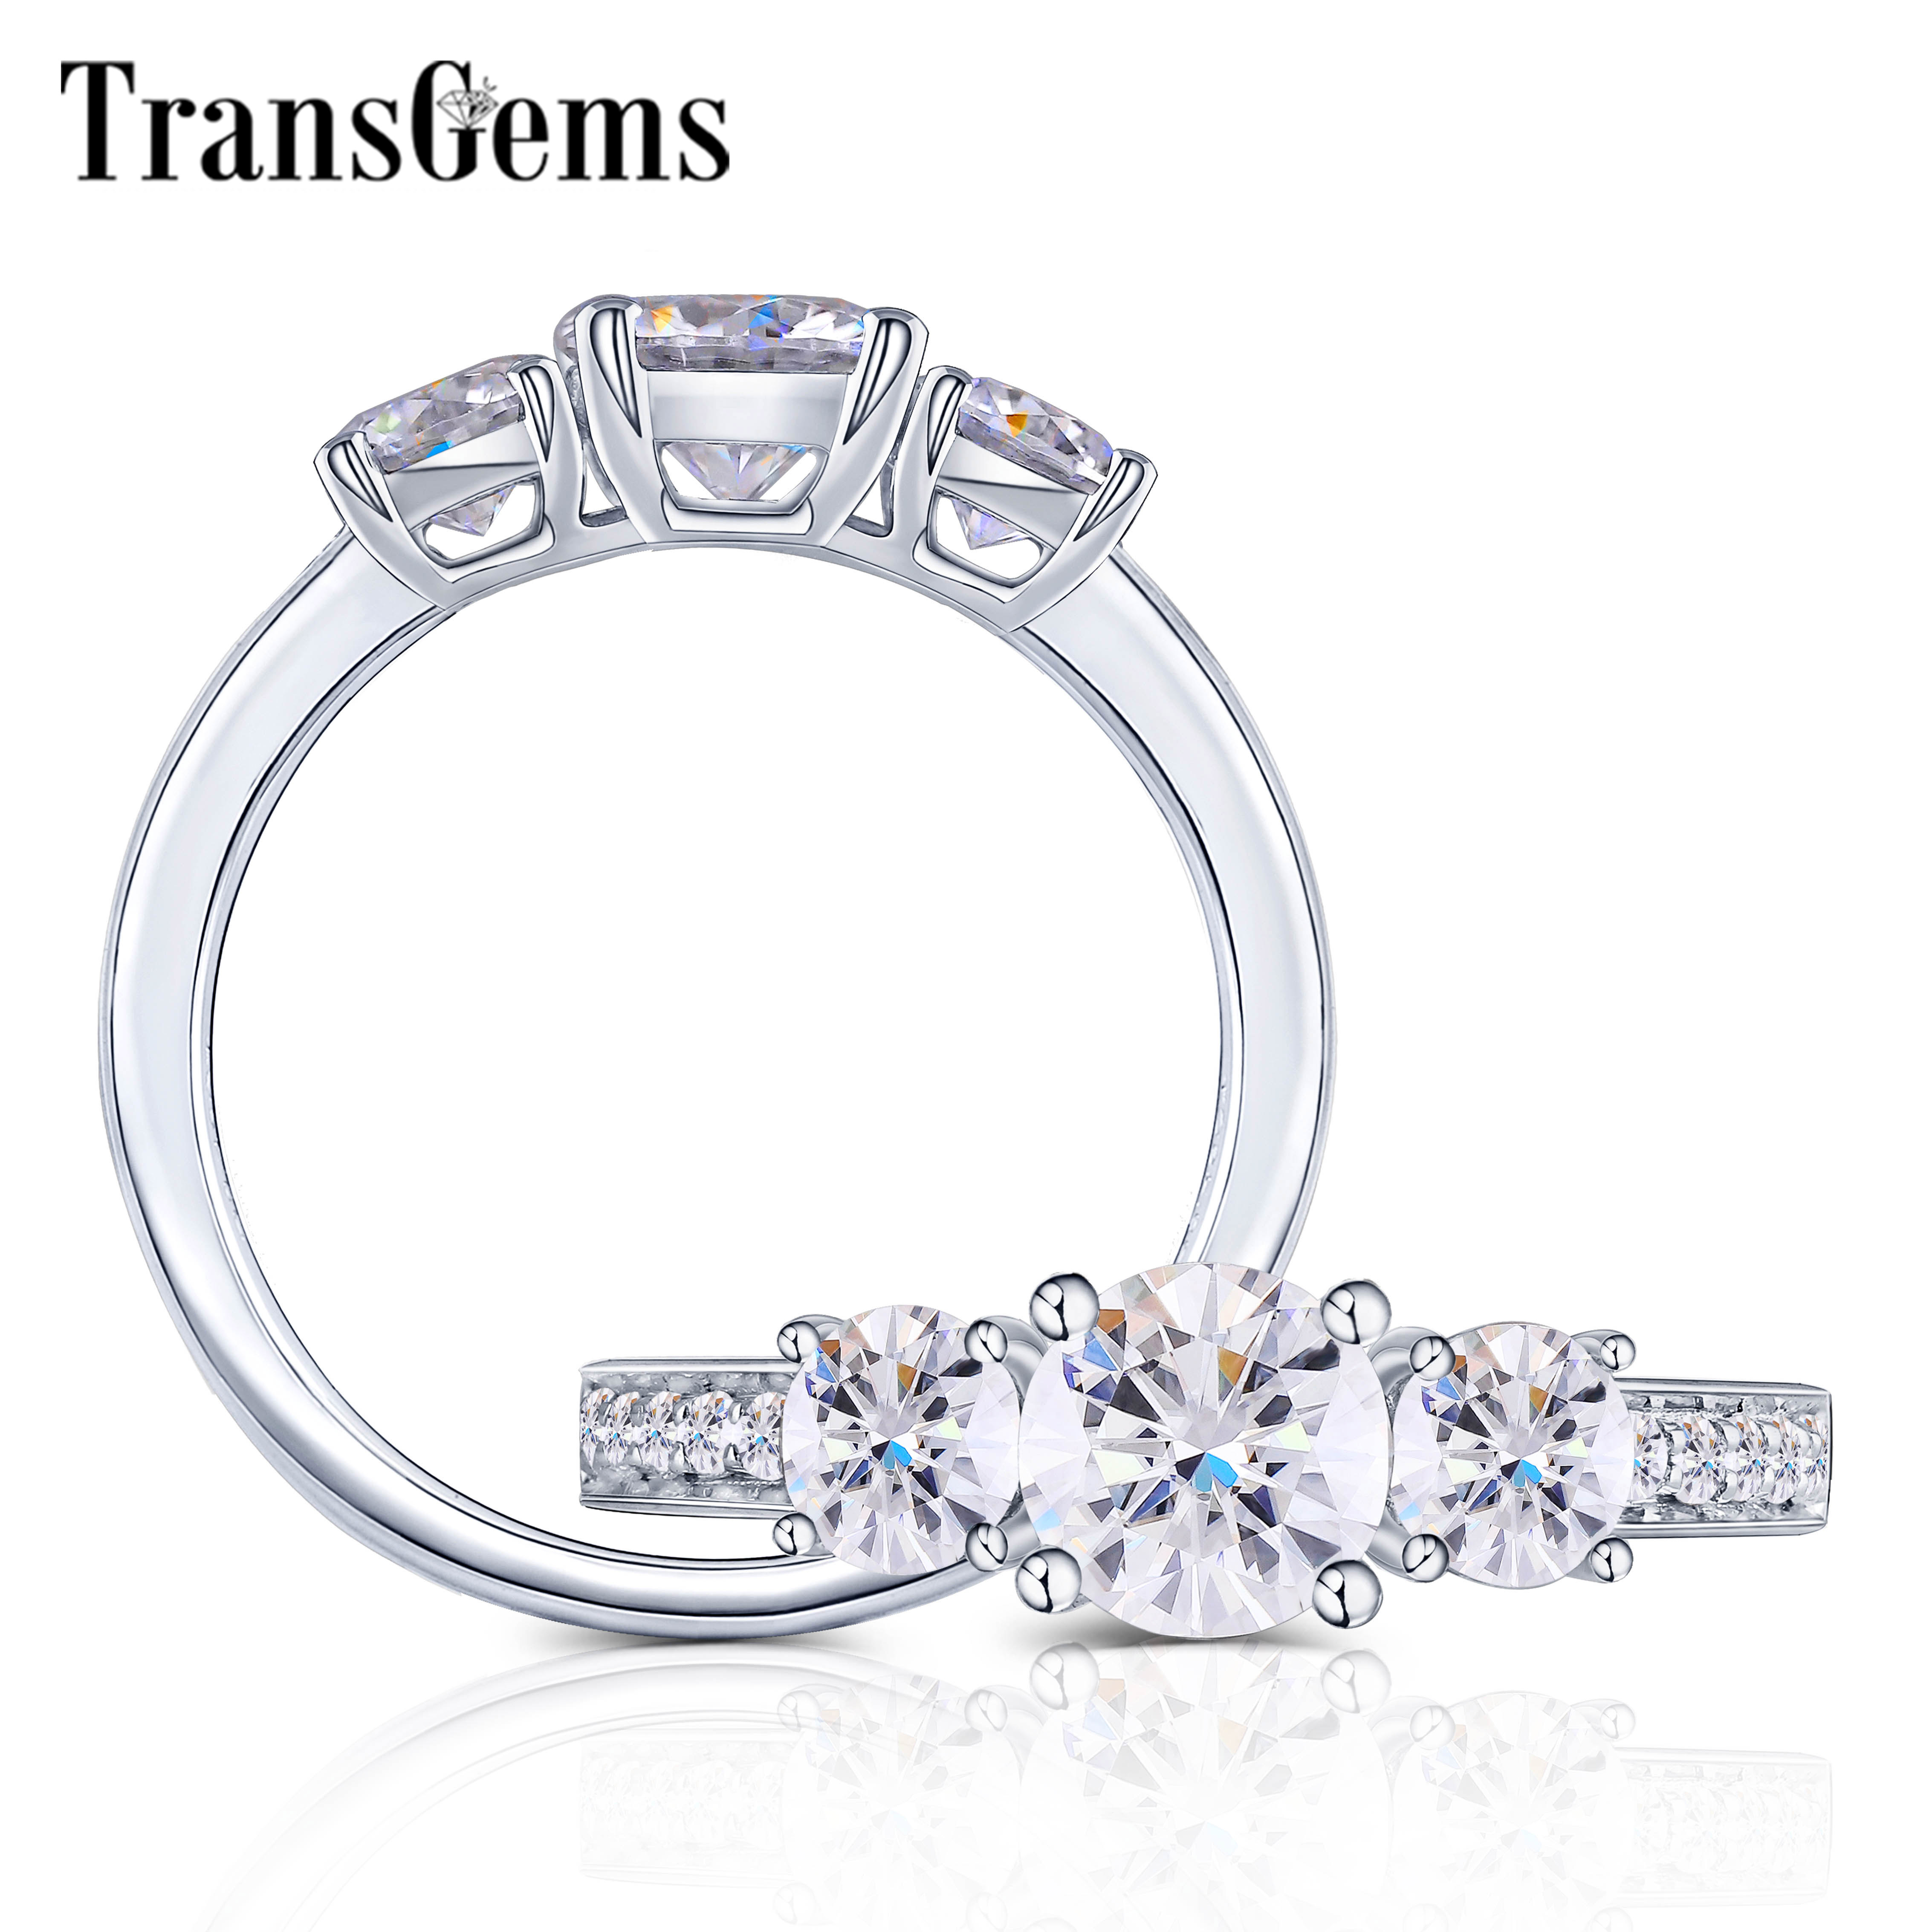 TransGems Silver S925 Sterling 3-Stone Ring Center 4mm-5.5mm-4mm Round FG Color Moissanite Anniversary Gifts Fine Jewelry